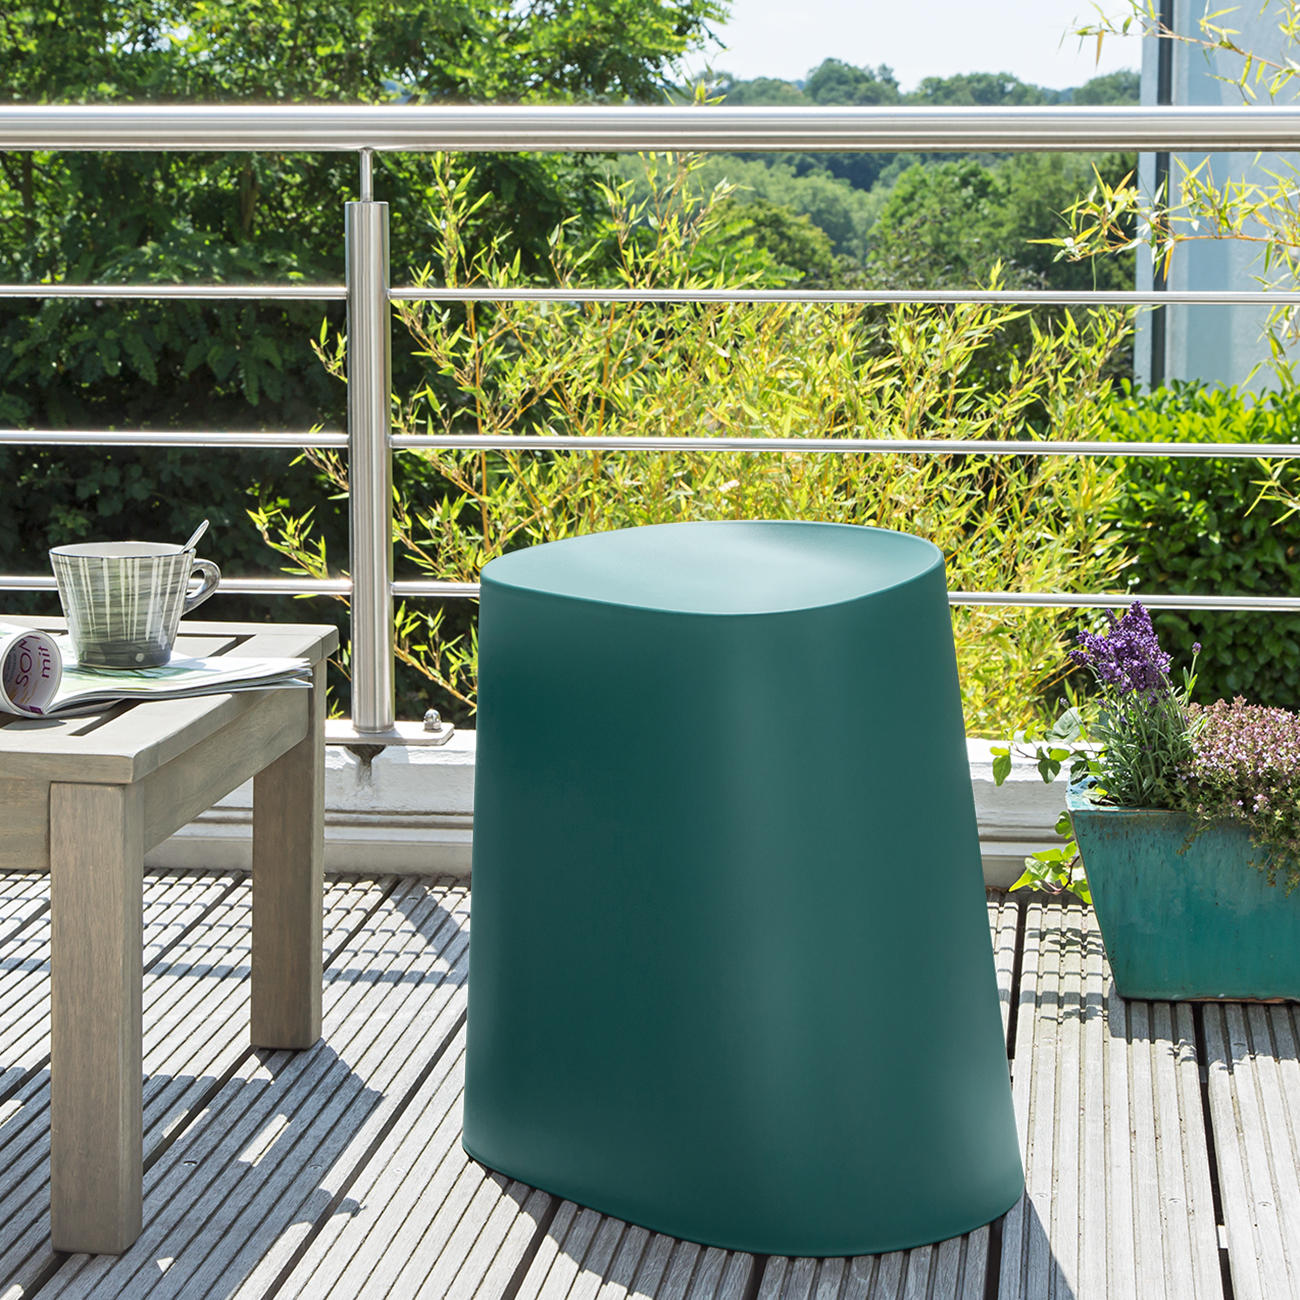 Surprising Relish Stool 3 Jahre Garantie Pro Idee Gmtry Best Dining Table And Chair Ideas Images Gmtryco